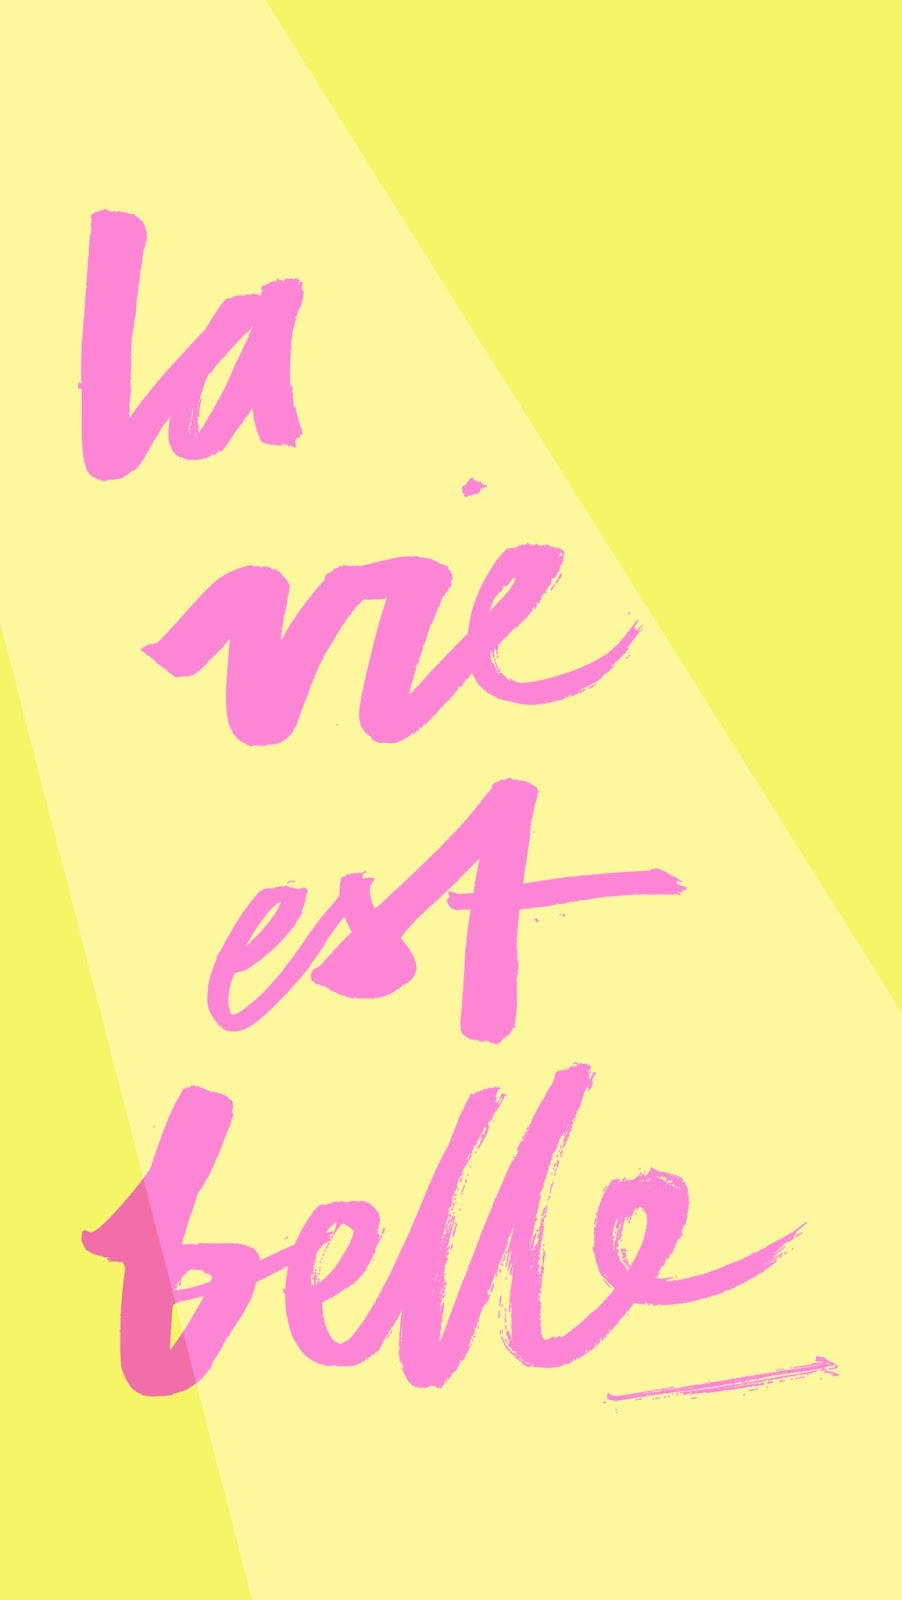 la-vie-est-belle-iphone wallpapers